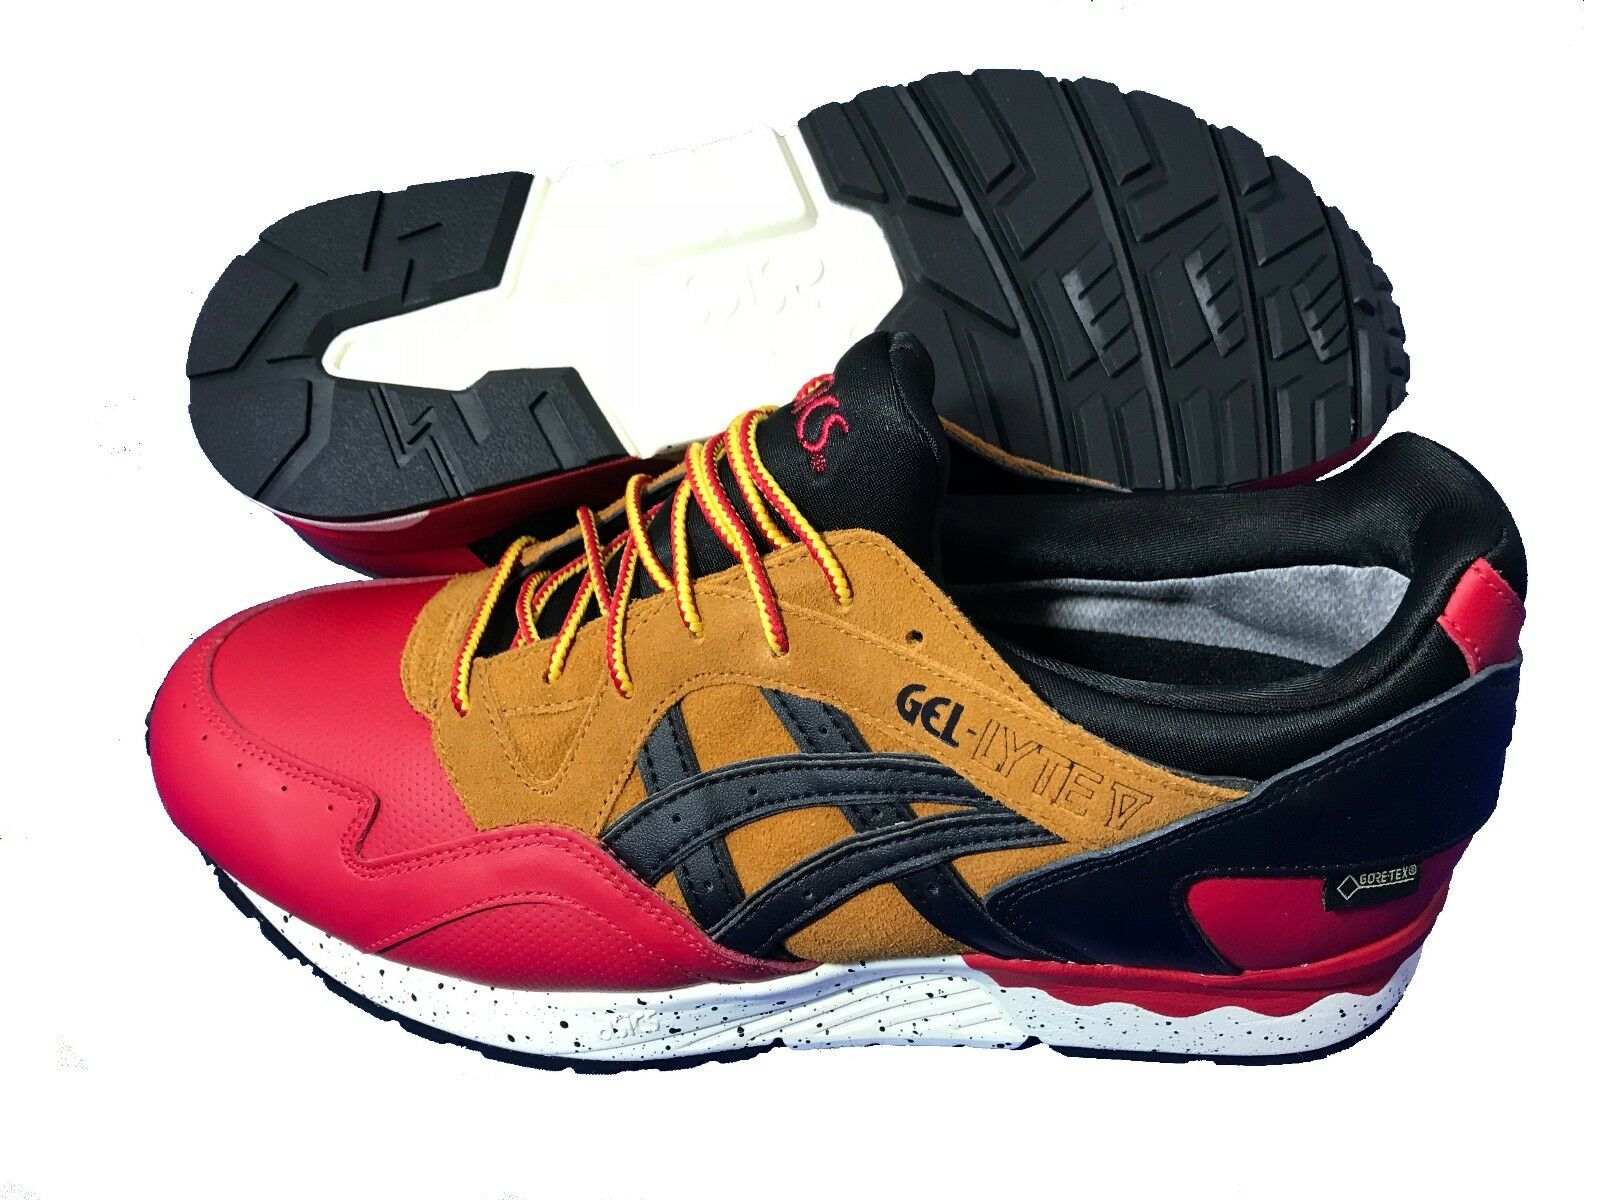 ASICS Gel Lyte V G-TX Gore-Tex Mens Boys Trainers Shoes Red / Black RRP £100